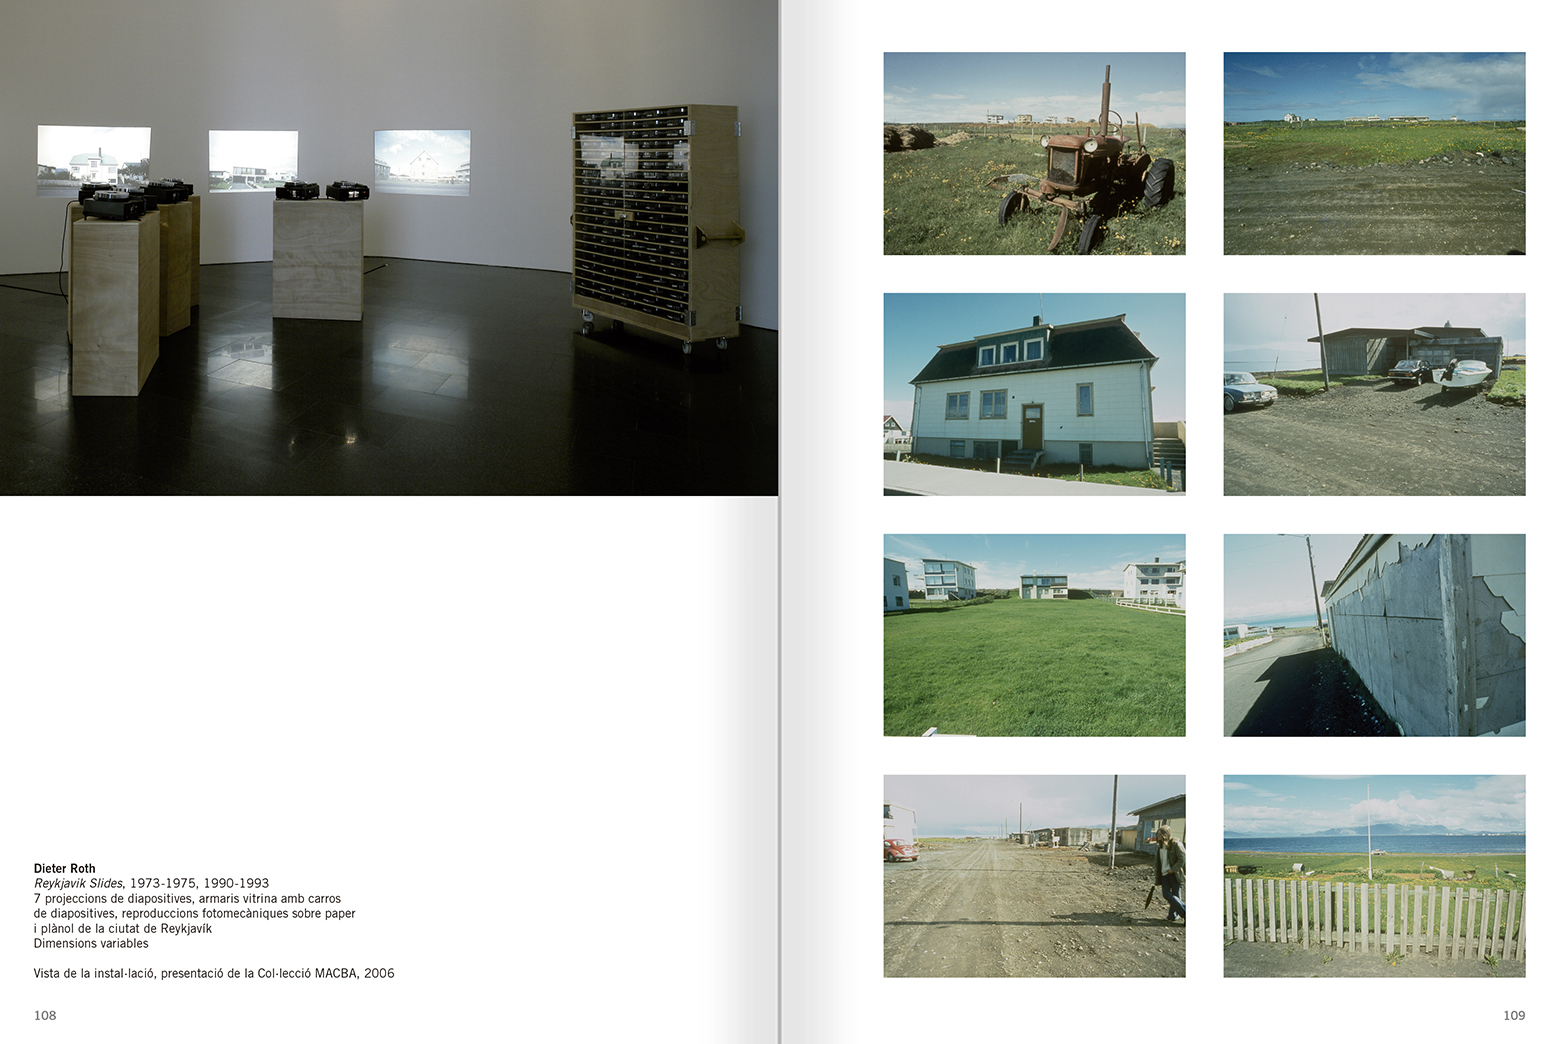 Selection from the catalogue 'Relational Objects. MACBA Collection 2002-07', pages 108 and 109